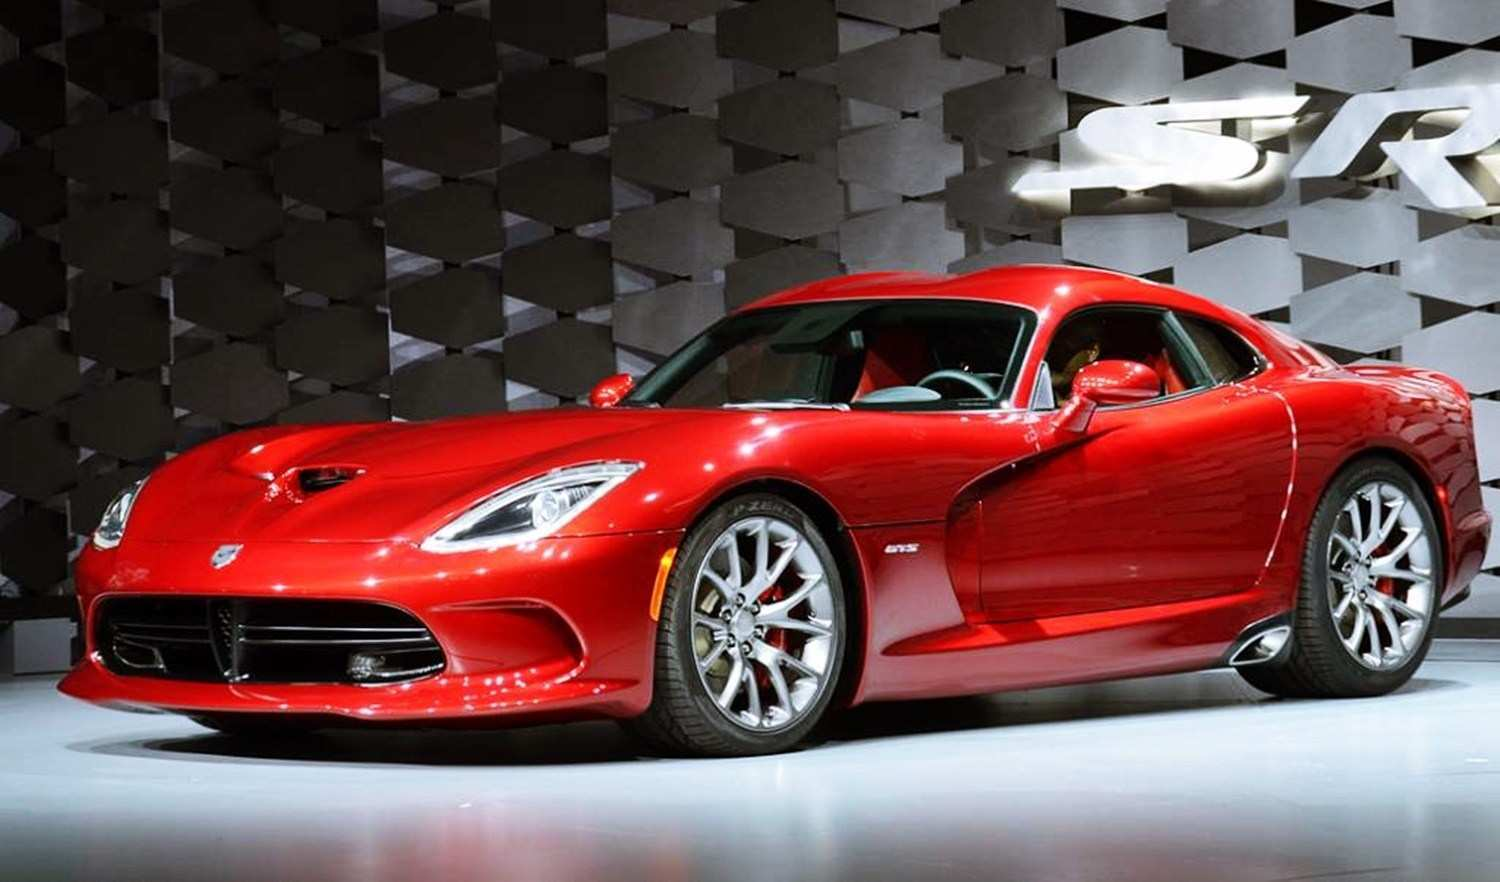 55 The 2020 Dodge Viper Concept Review And Release Date